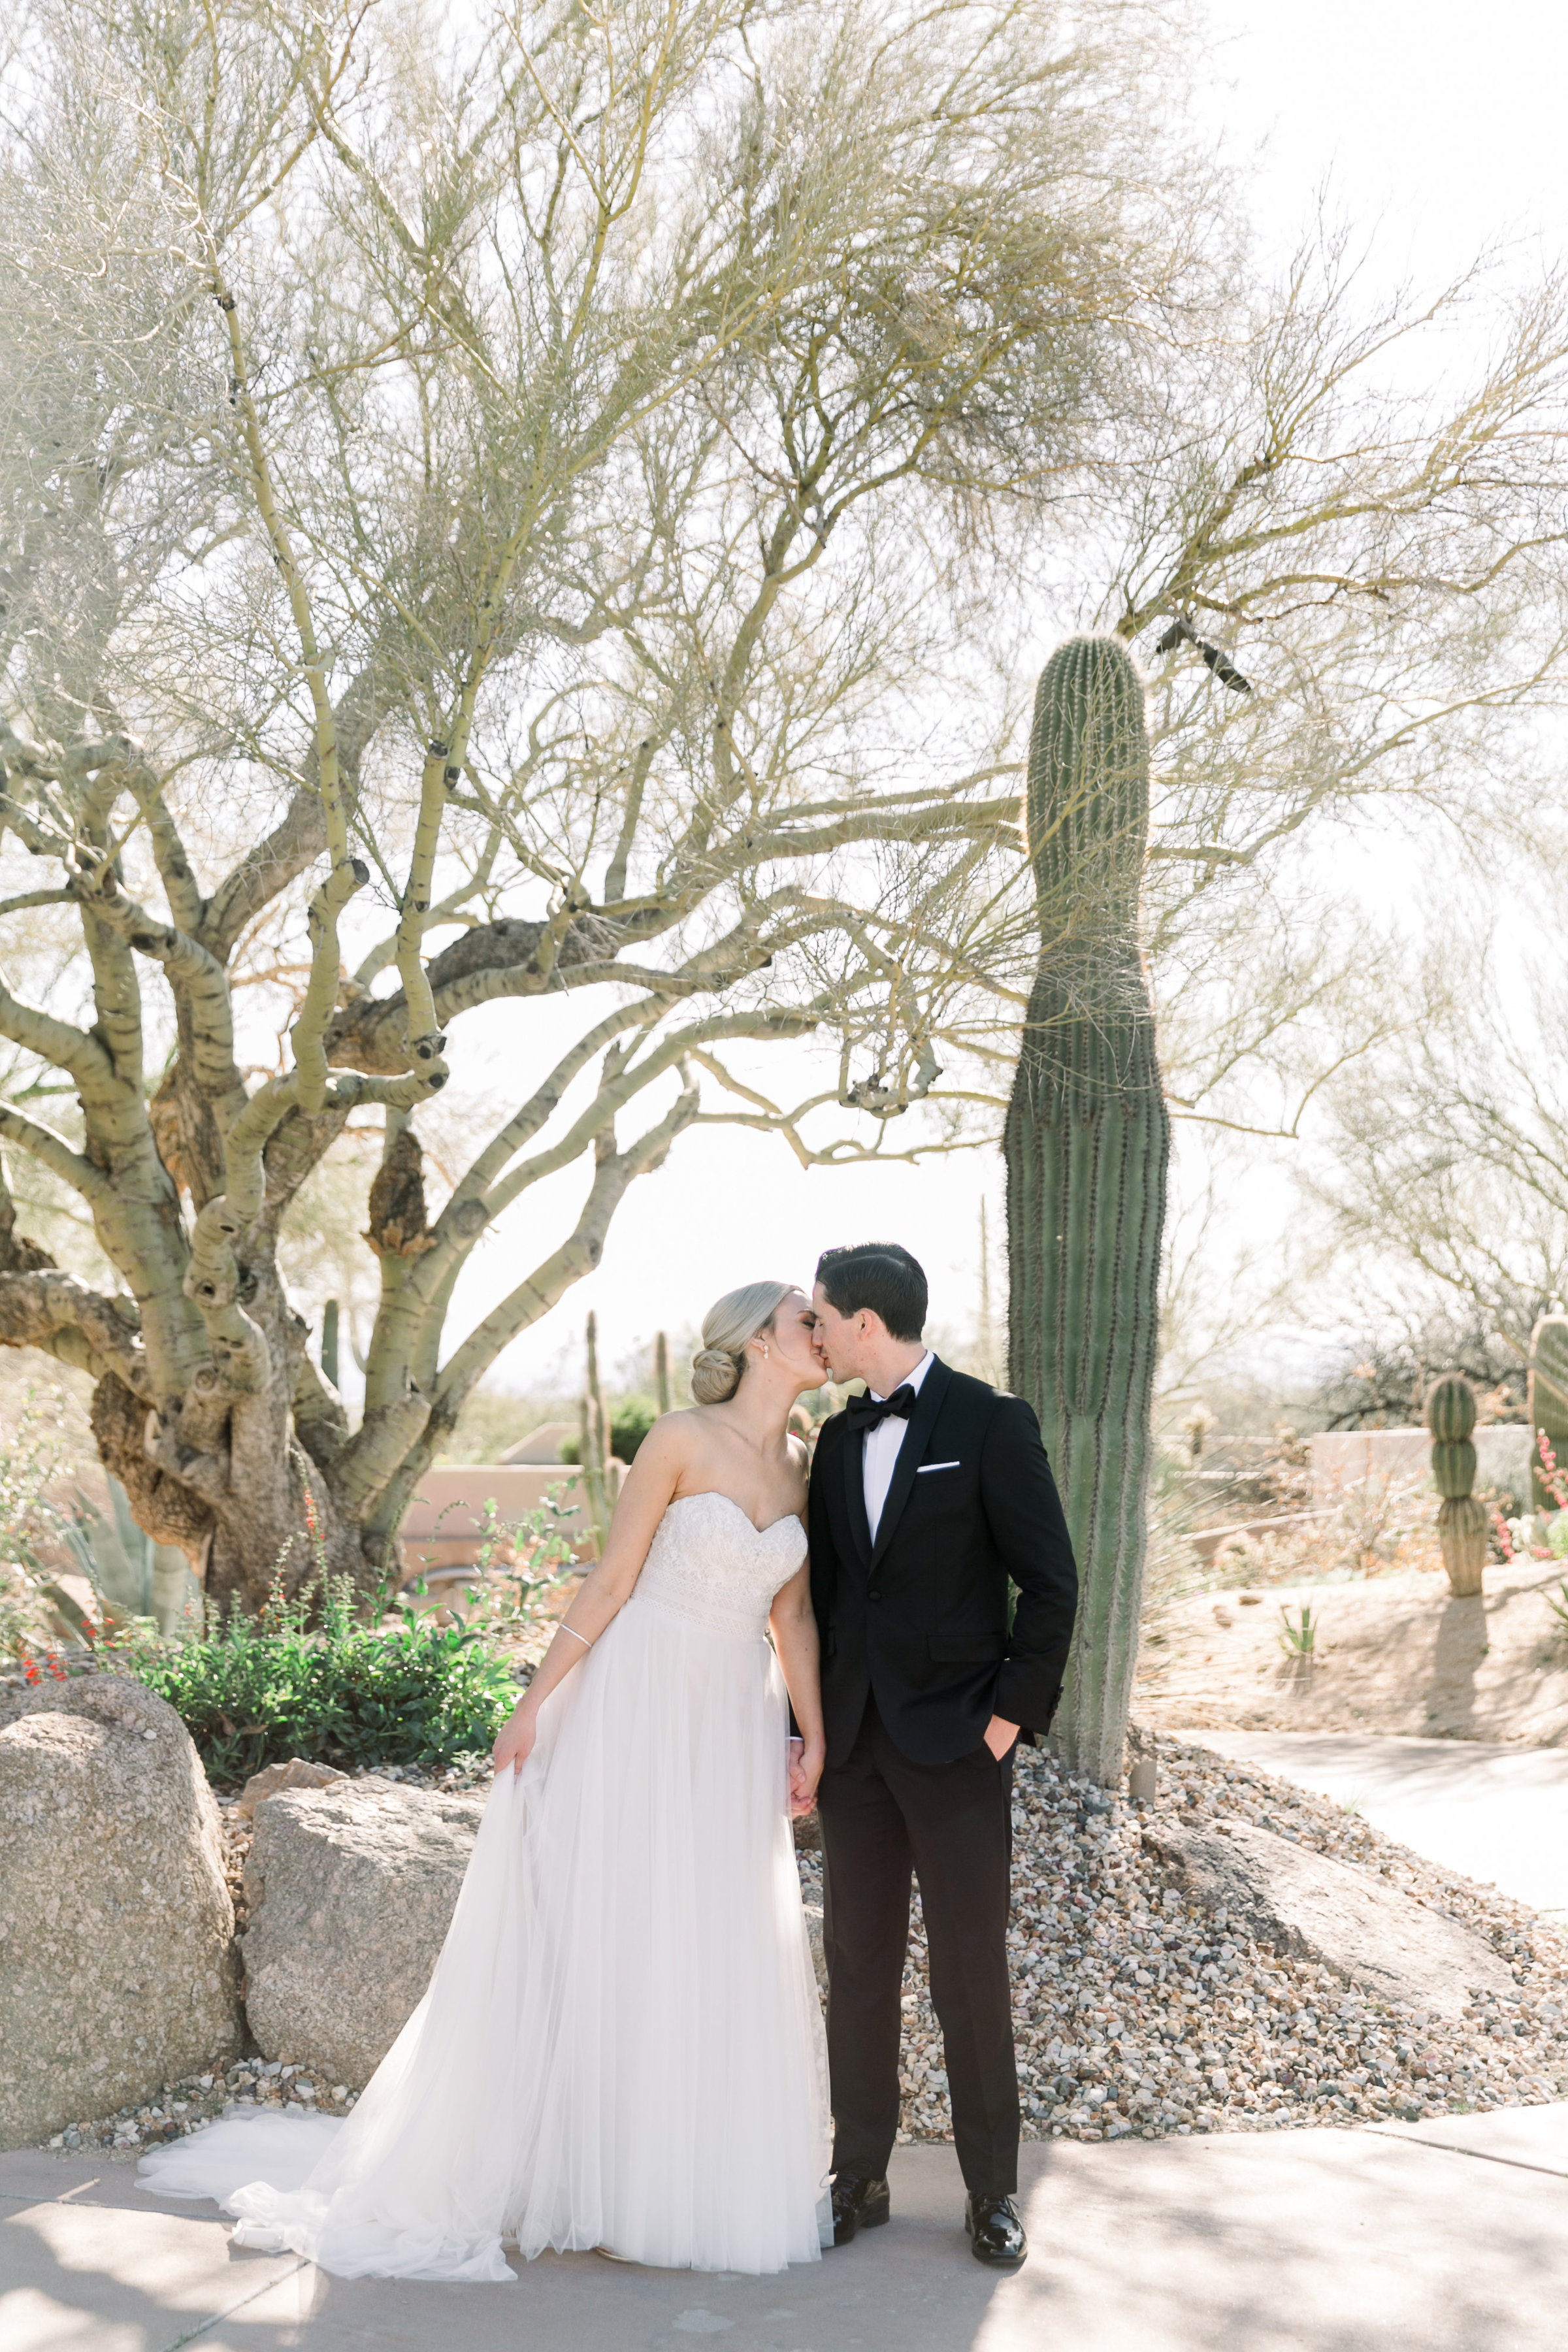 Karlie Colleen Photography - Arizona Wedding at The Troon Scottsdale Country Club - Paige & Shane -164